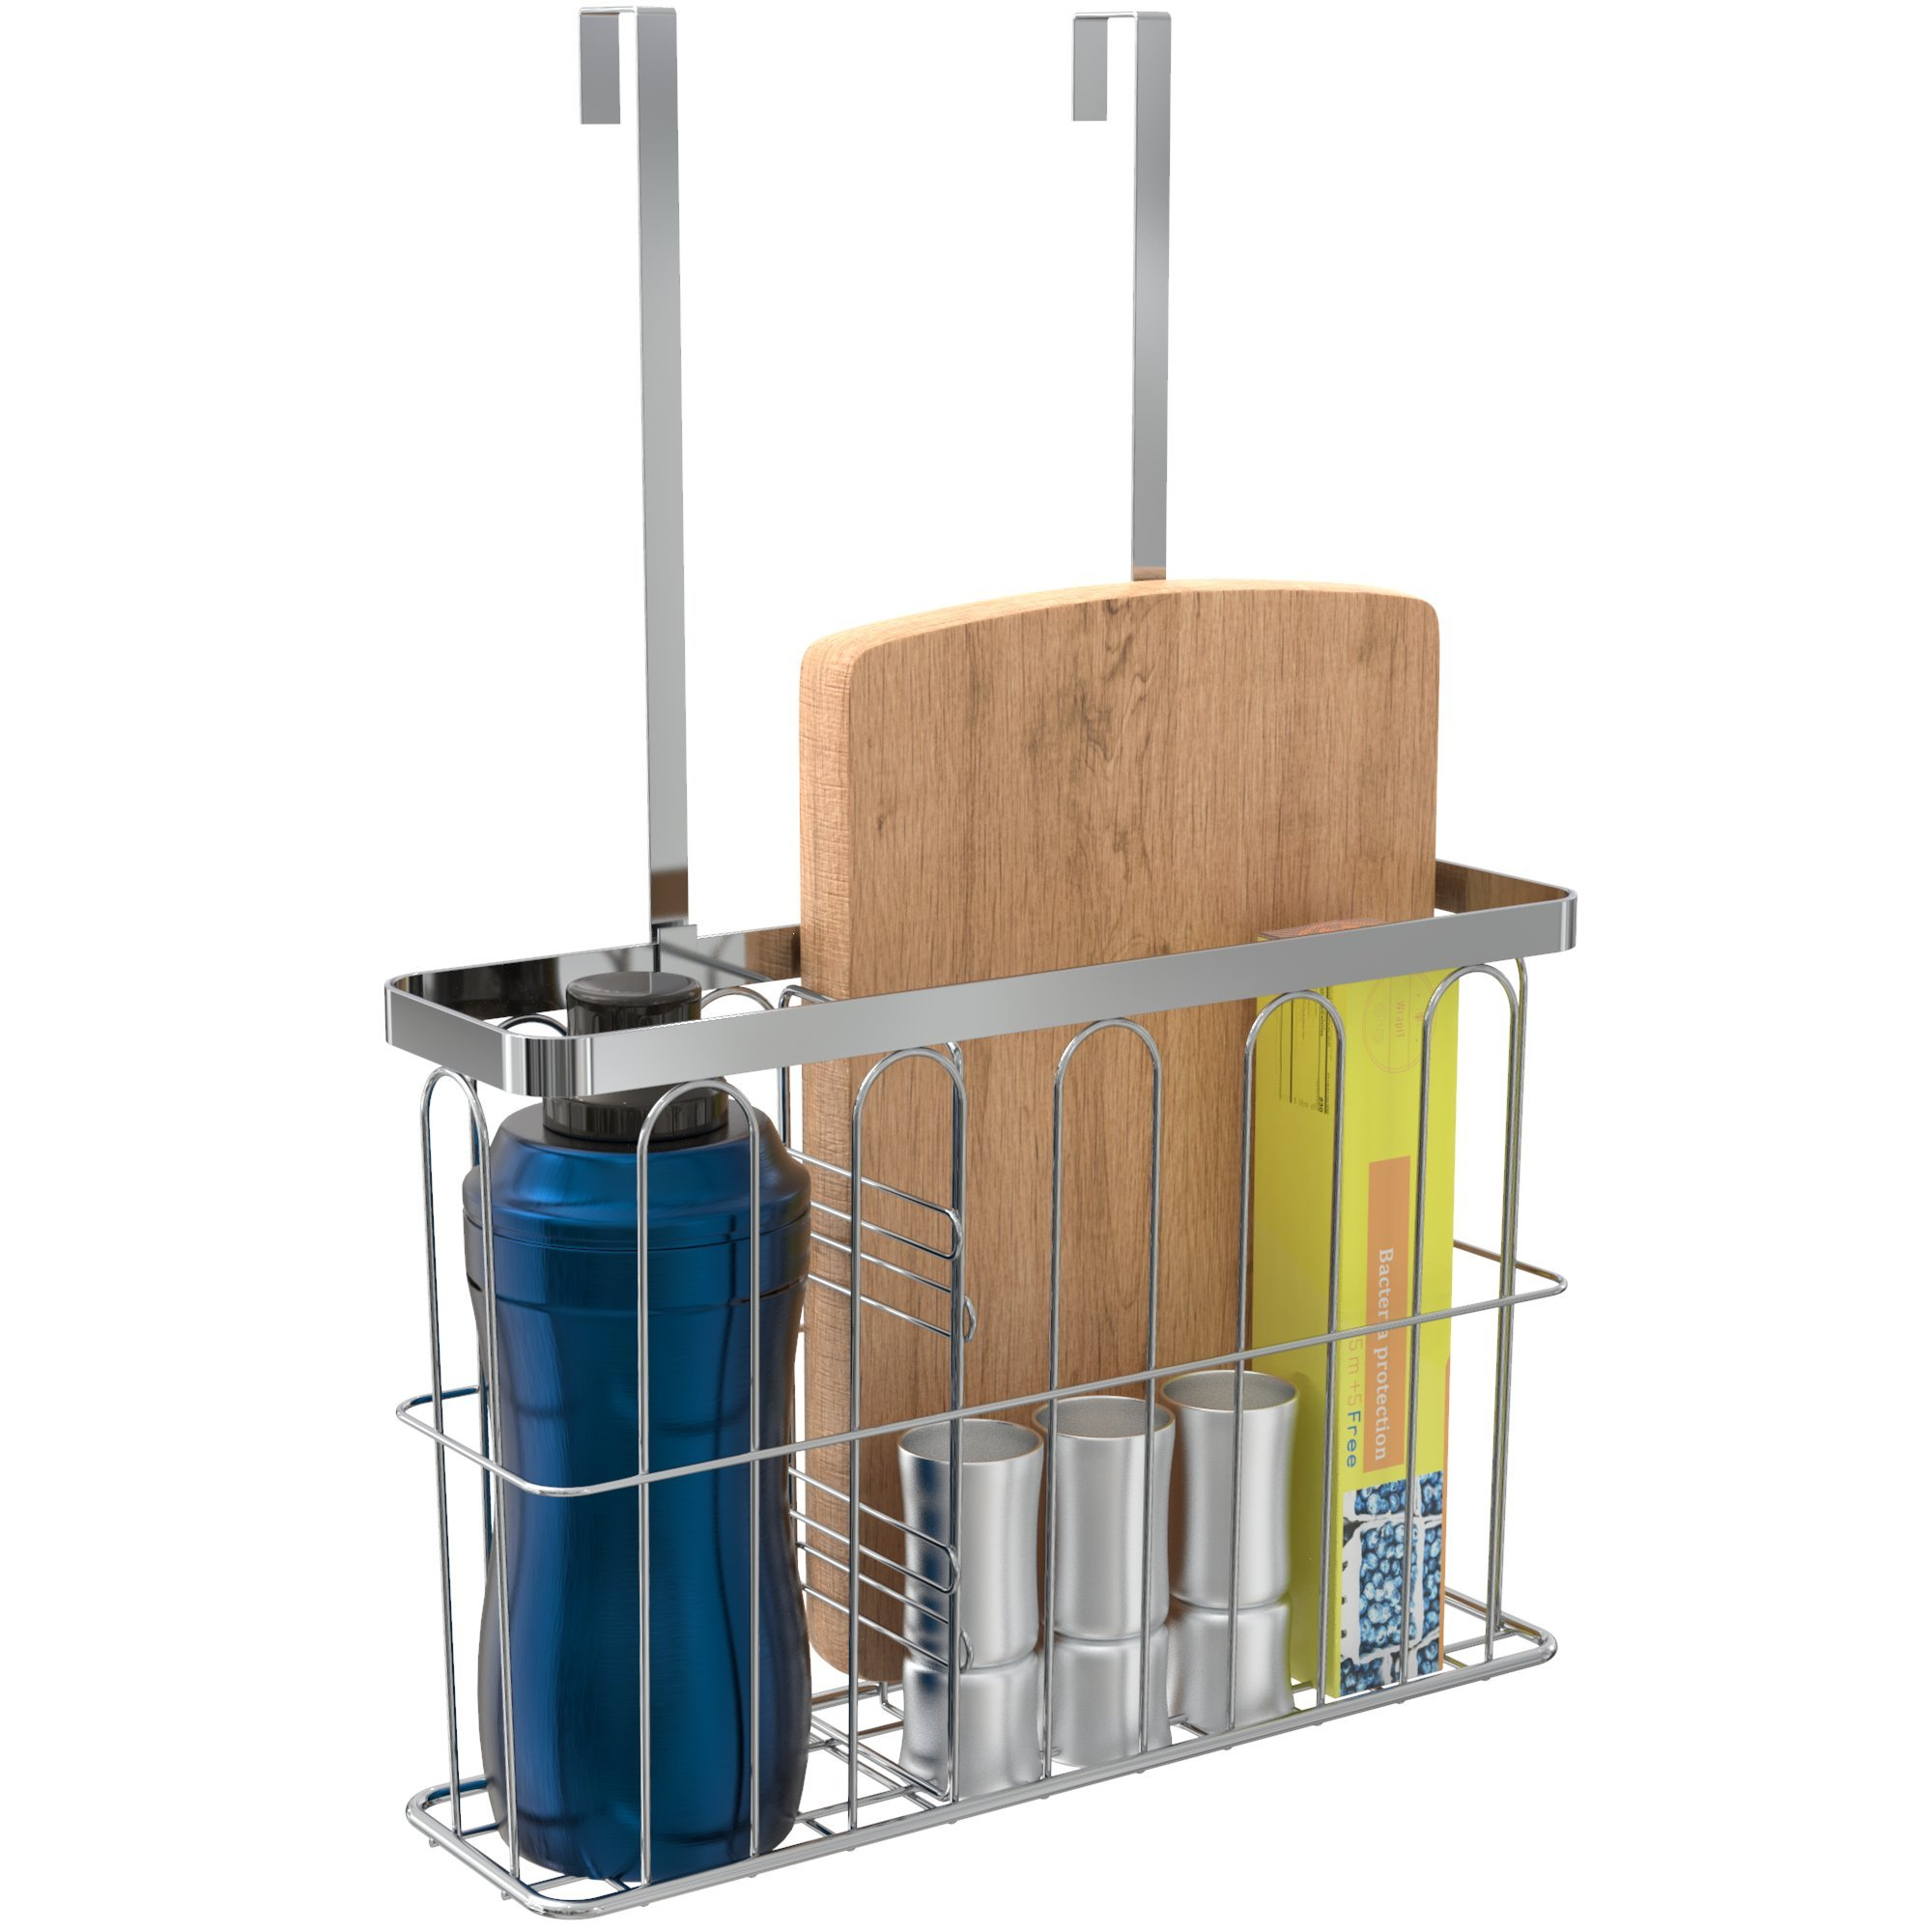 ULFR Over the Cabinet Door Kitchen Storage Organizer Basket, Space Saving Drawer Grid Holder for Cleaning Supplies, Bottles, Board, Chrome Finish with an Easy to Install Divider